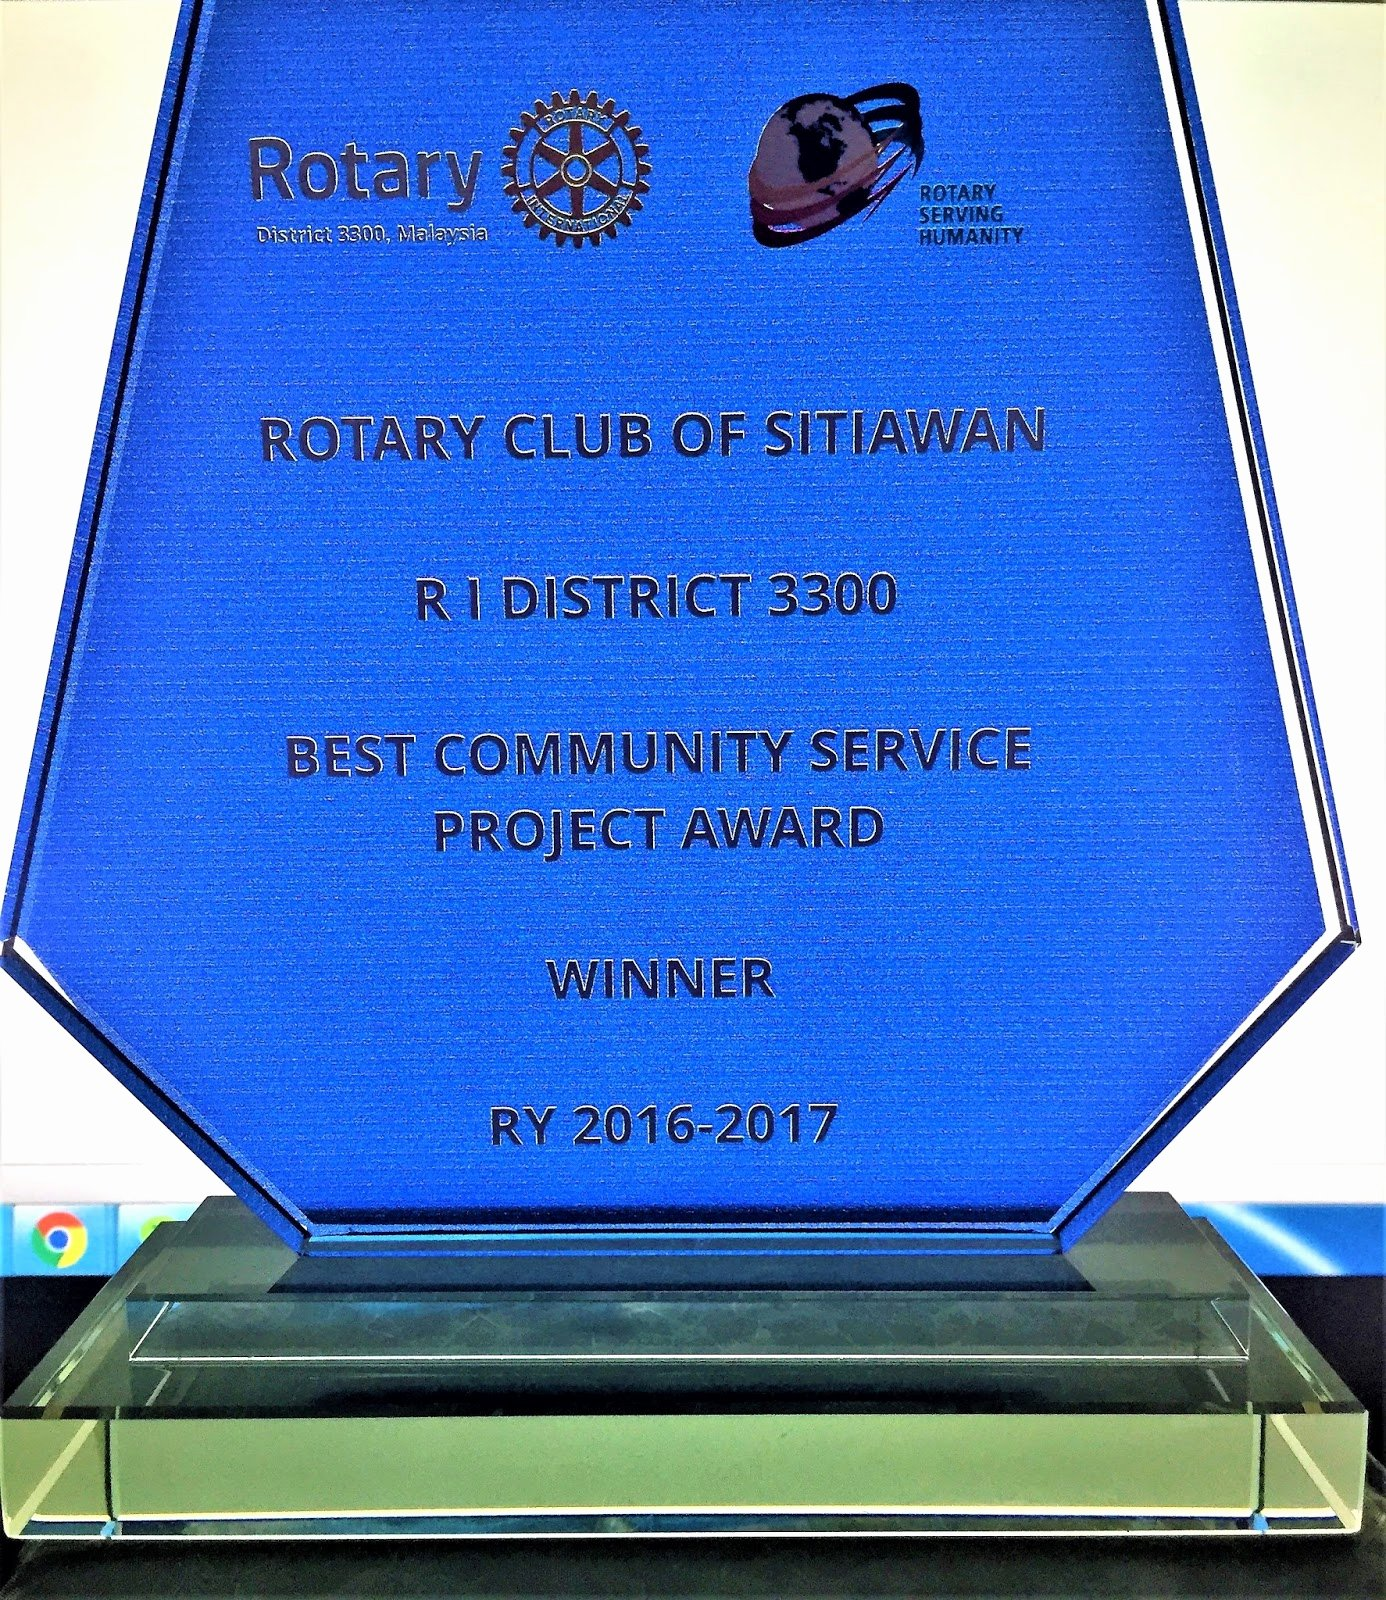 Community Service Award Template New Rotary Club Of Sitiawan Chartered On 16 03 1961 2017